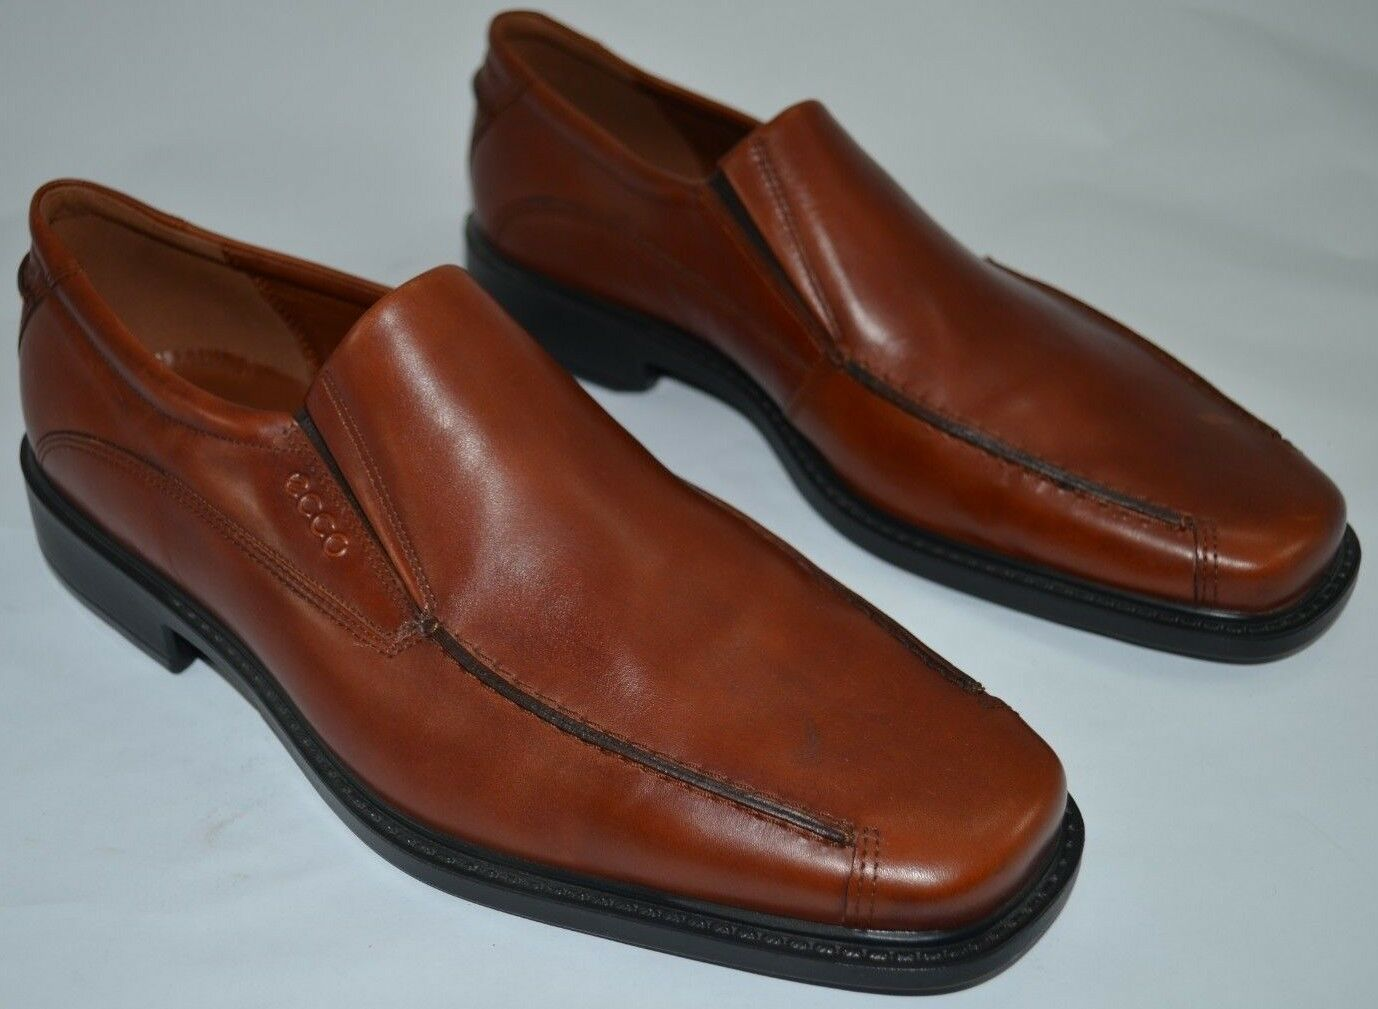 Ecco Mens Comfort Pinch Bicycle Toe Loafers Cognac Brown Leather Sz EU 45 US 11